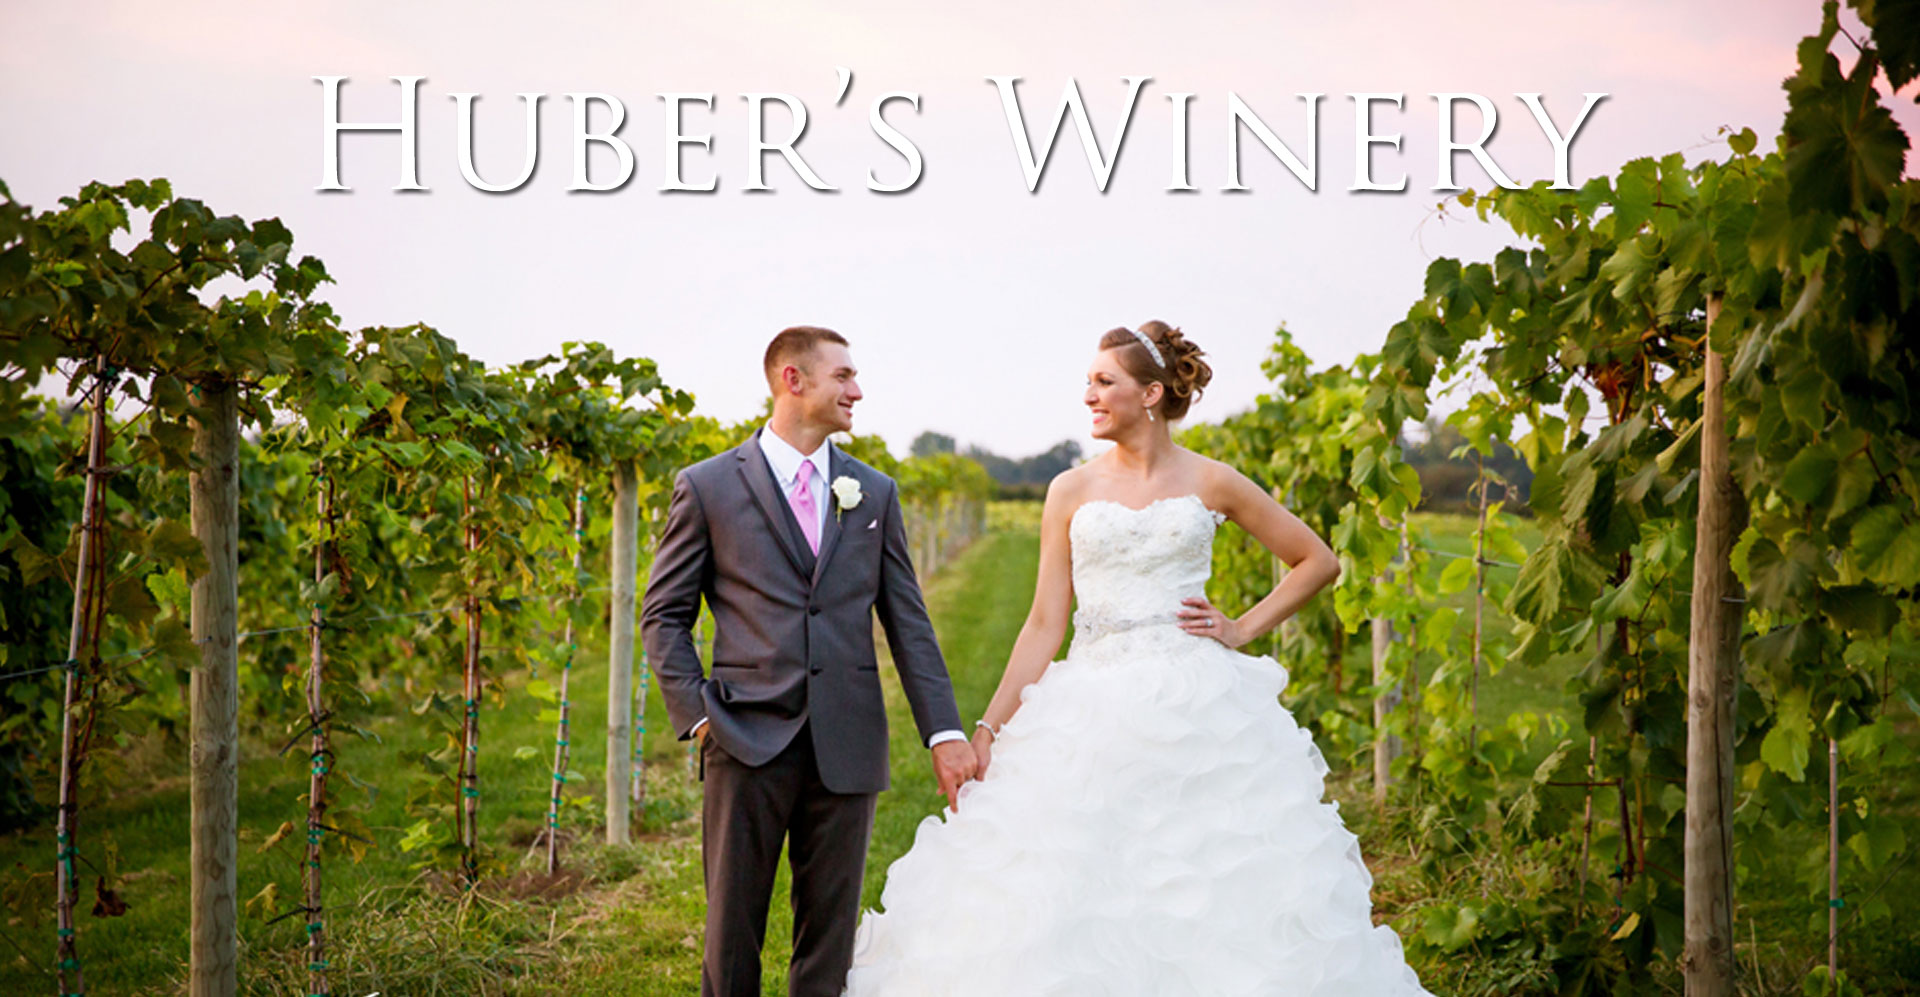 Huber's Winery Wedding Photo